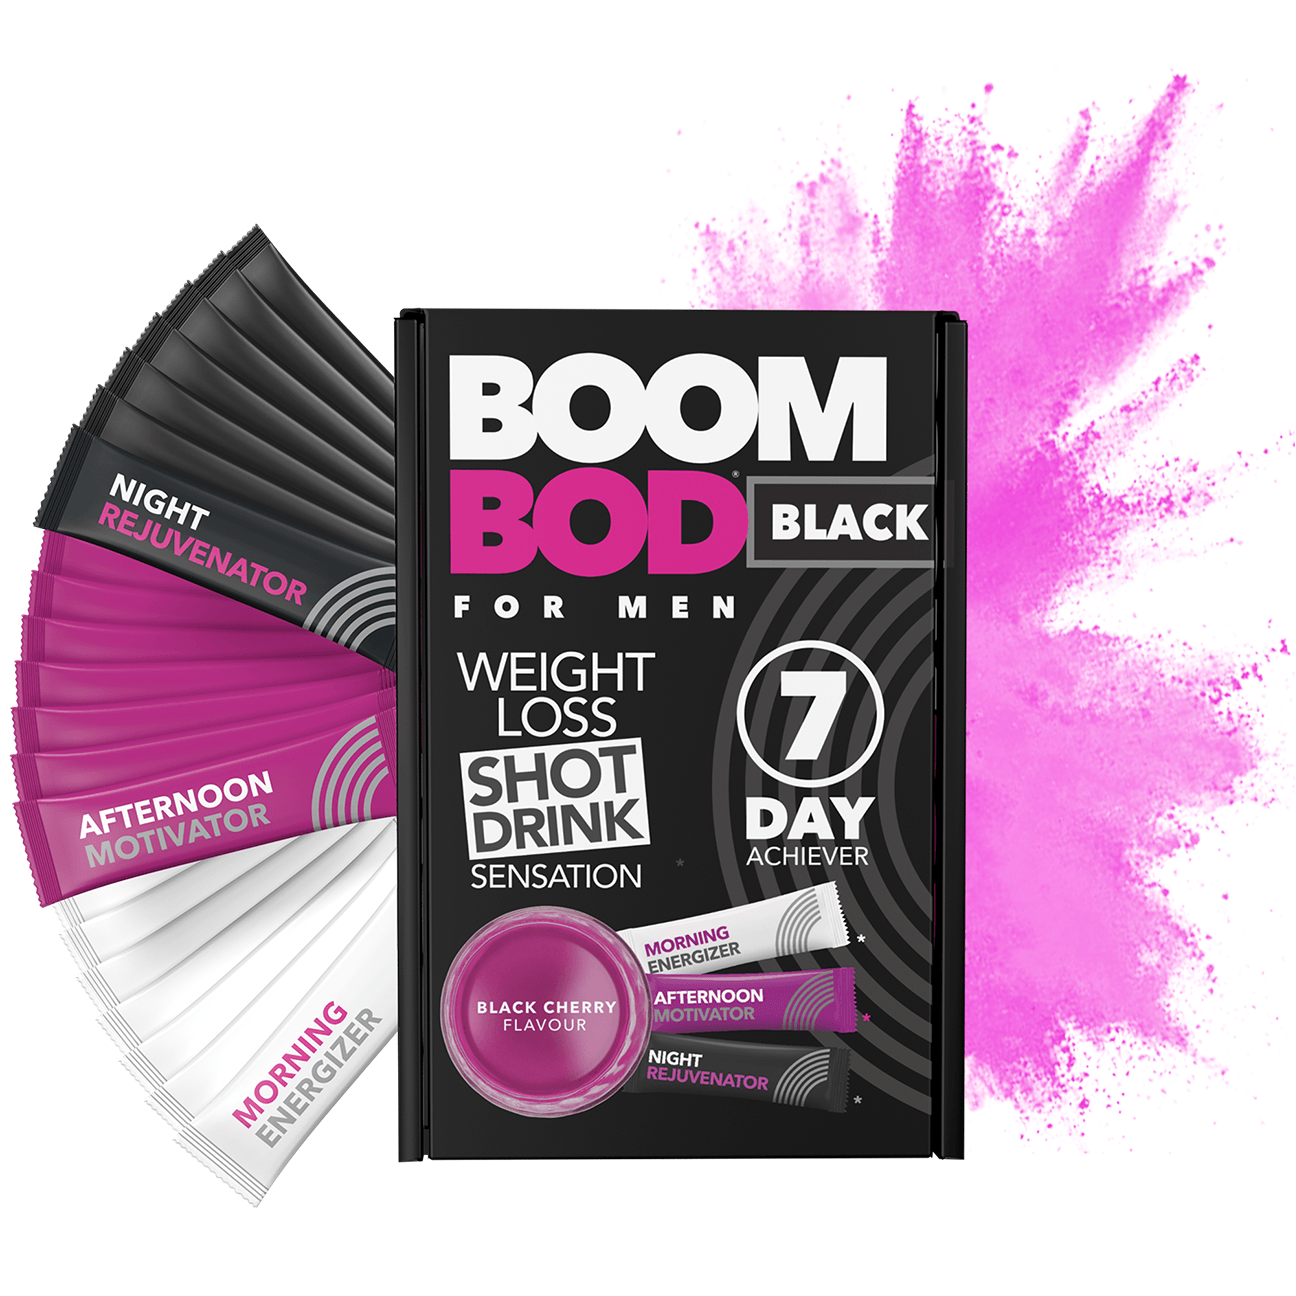 Boombod 7 Day Achiever Men's | Black Cherry | Weight Loss Shot Drink